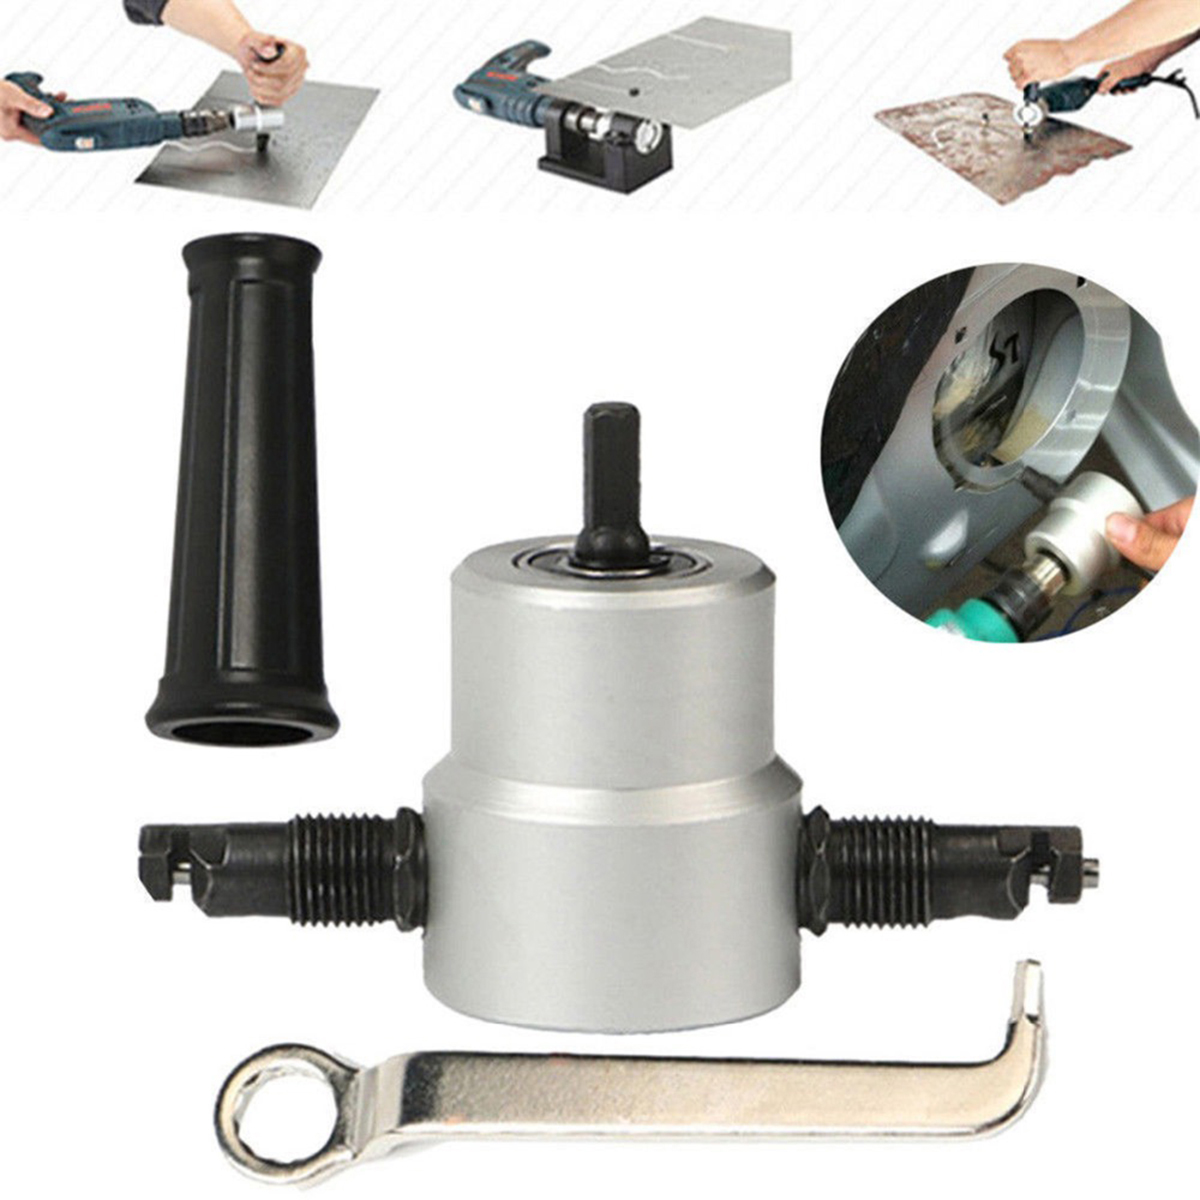 Nibble Metal Cutting Double Head Sheet Nibbler Saw Cutter Tool Drill Attachment Free Cutting Tool Nibbler Sheet Metal Cut Set